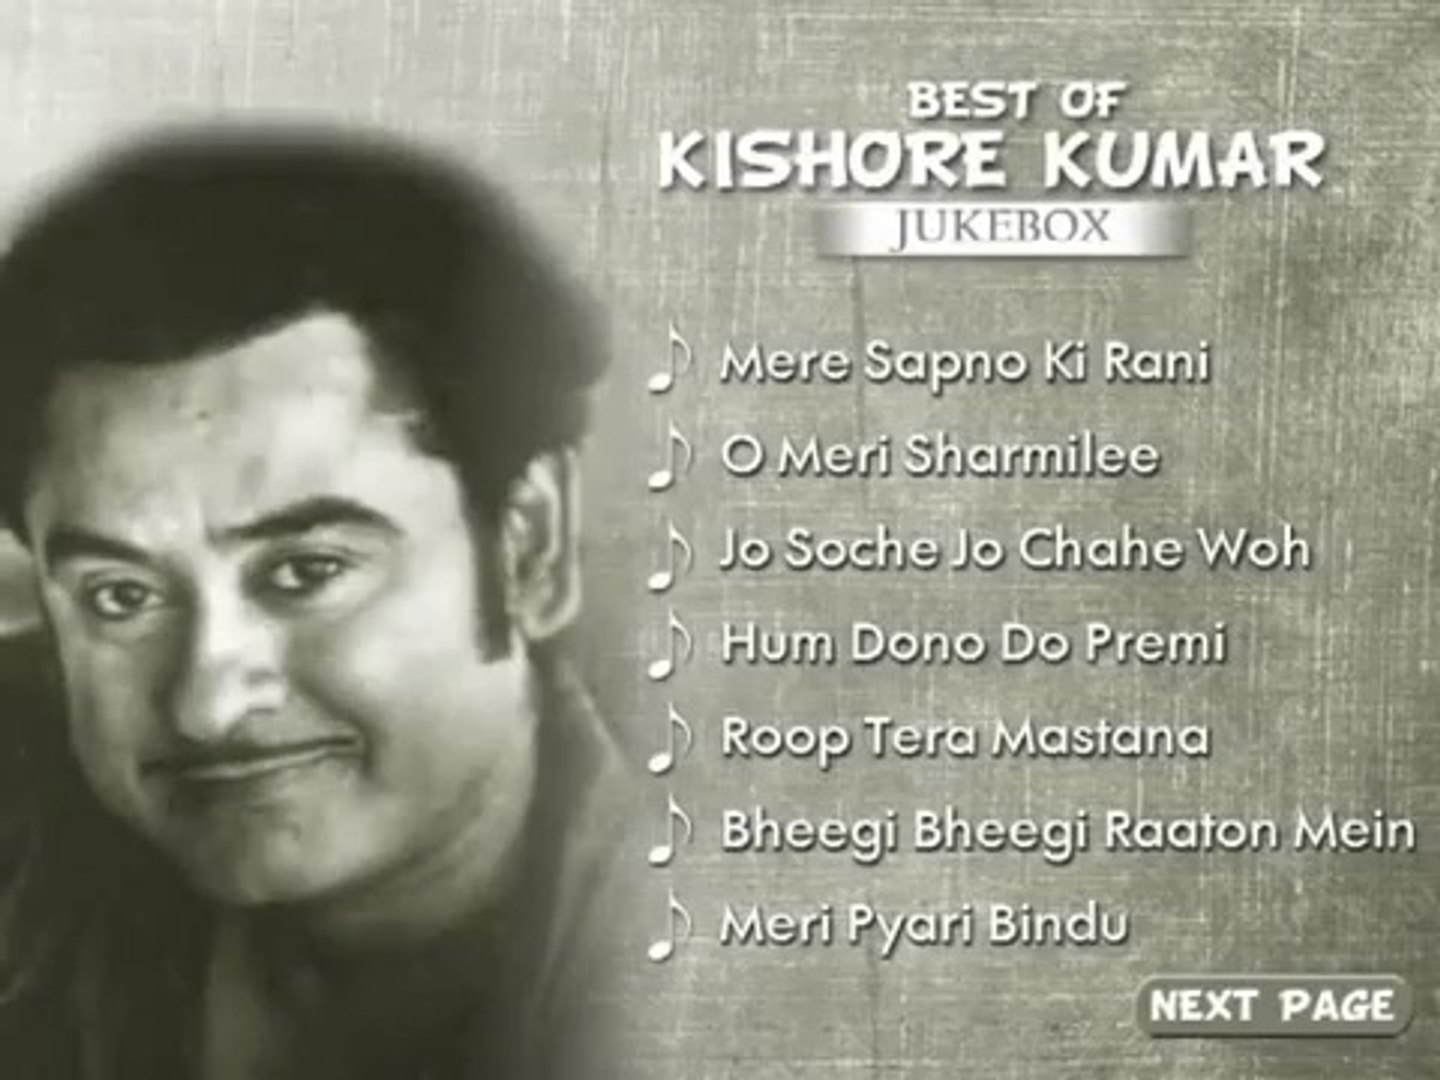 Kishore Kumar Superhit Songs Jukebox Evergreen Hindi Old Songs Video Dailymotion Please subscribe and stay connected for unlimited fun and entertainment. kishore kumar superhit songs jukebox evergreen hindi old songs